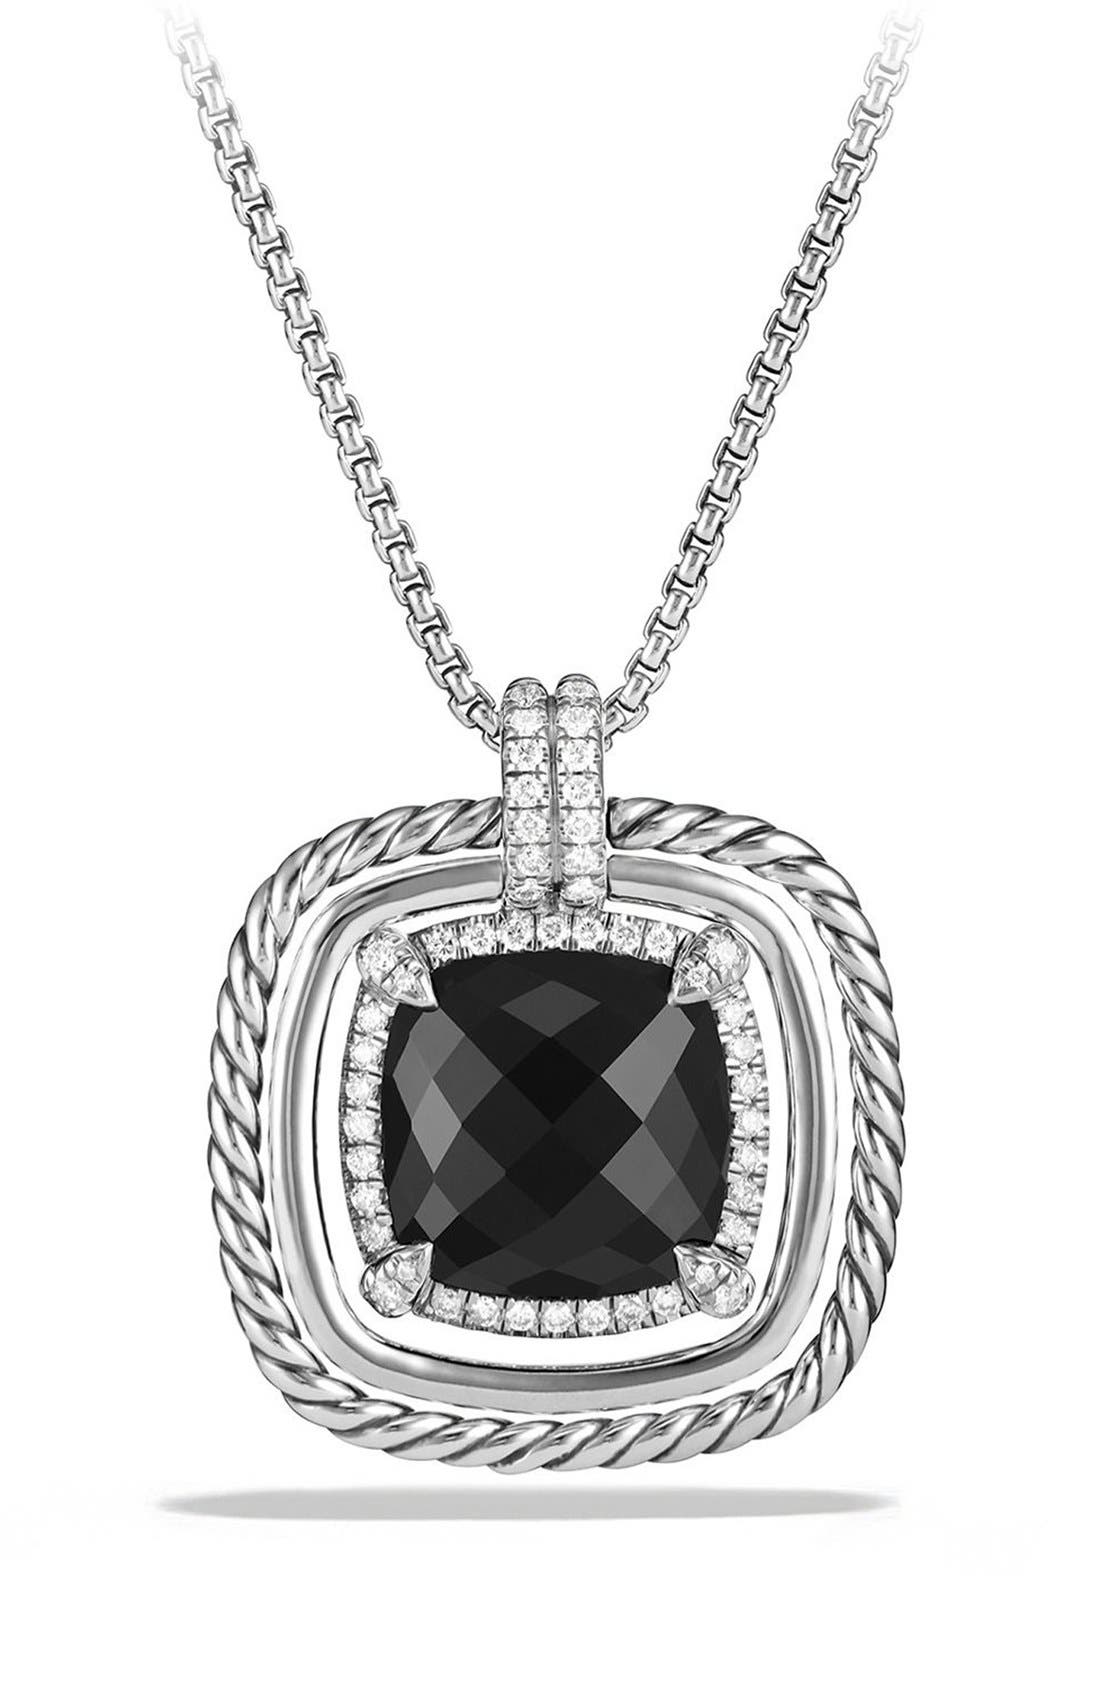 David Yurman 'Châtelaine' Large Pavé Bezel Pendant Necklace with Diamonds